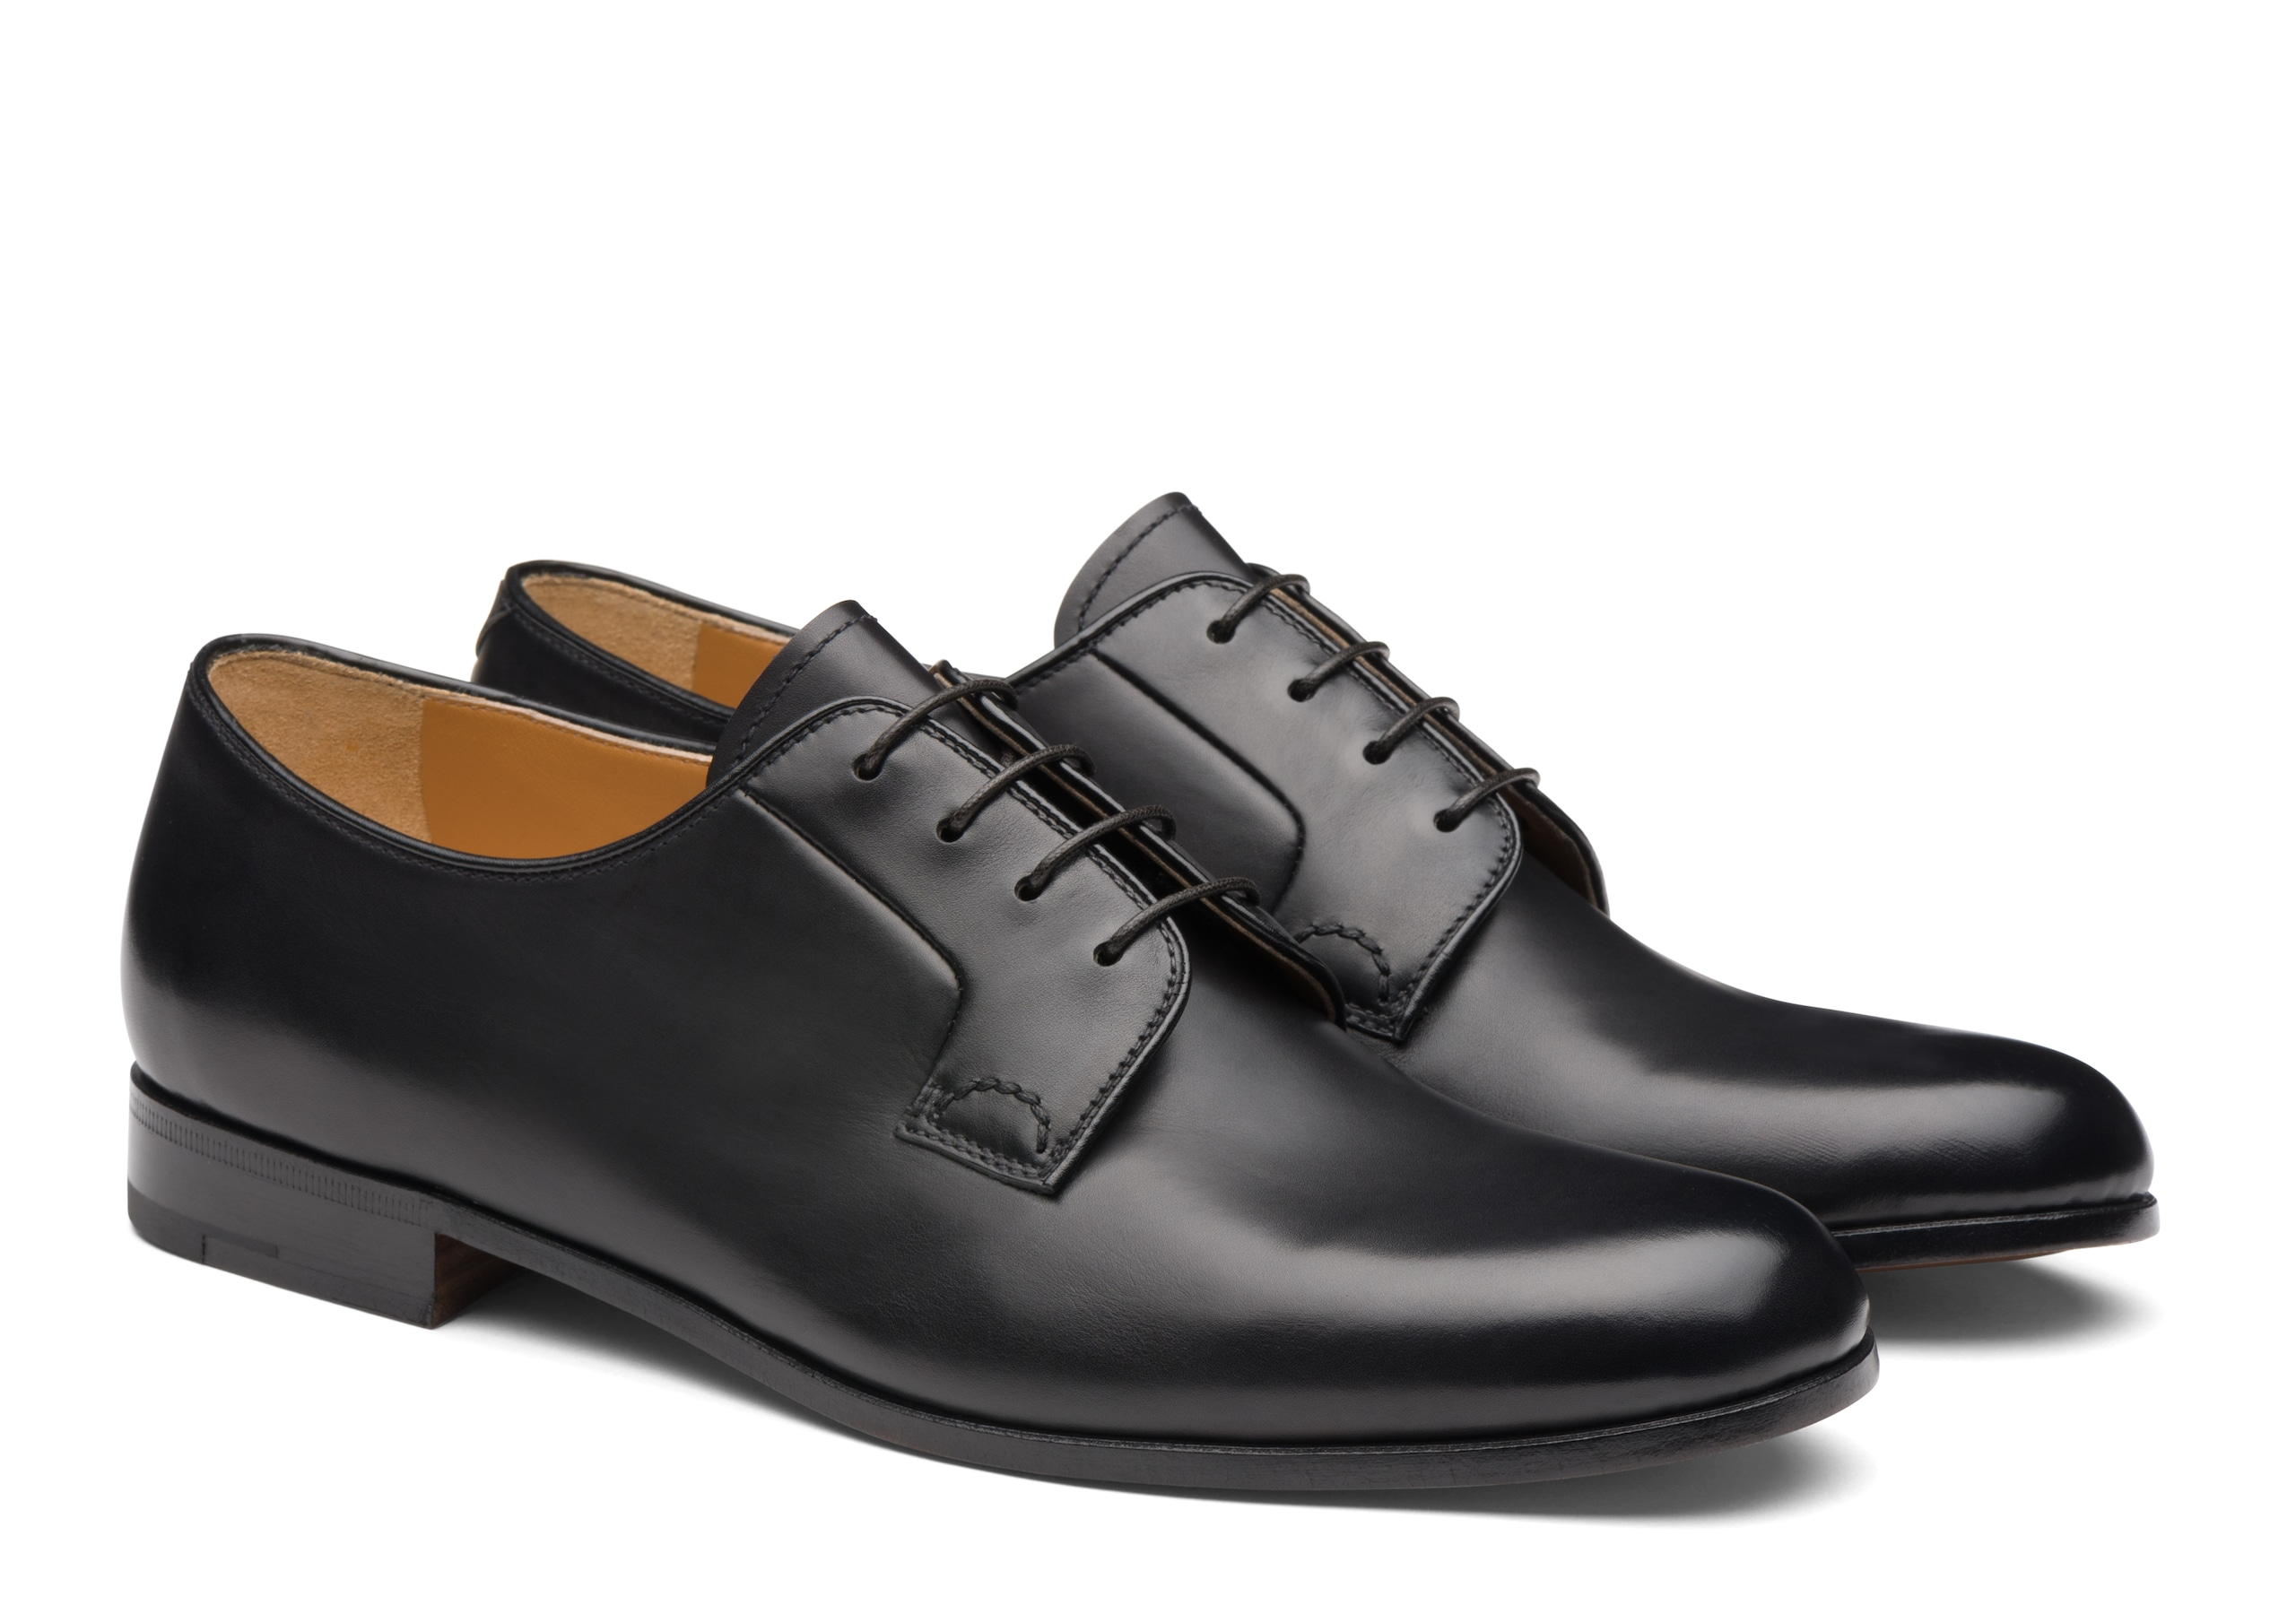 Ditchley Church's Calf Leather Derby Black Black